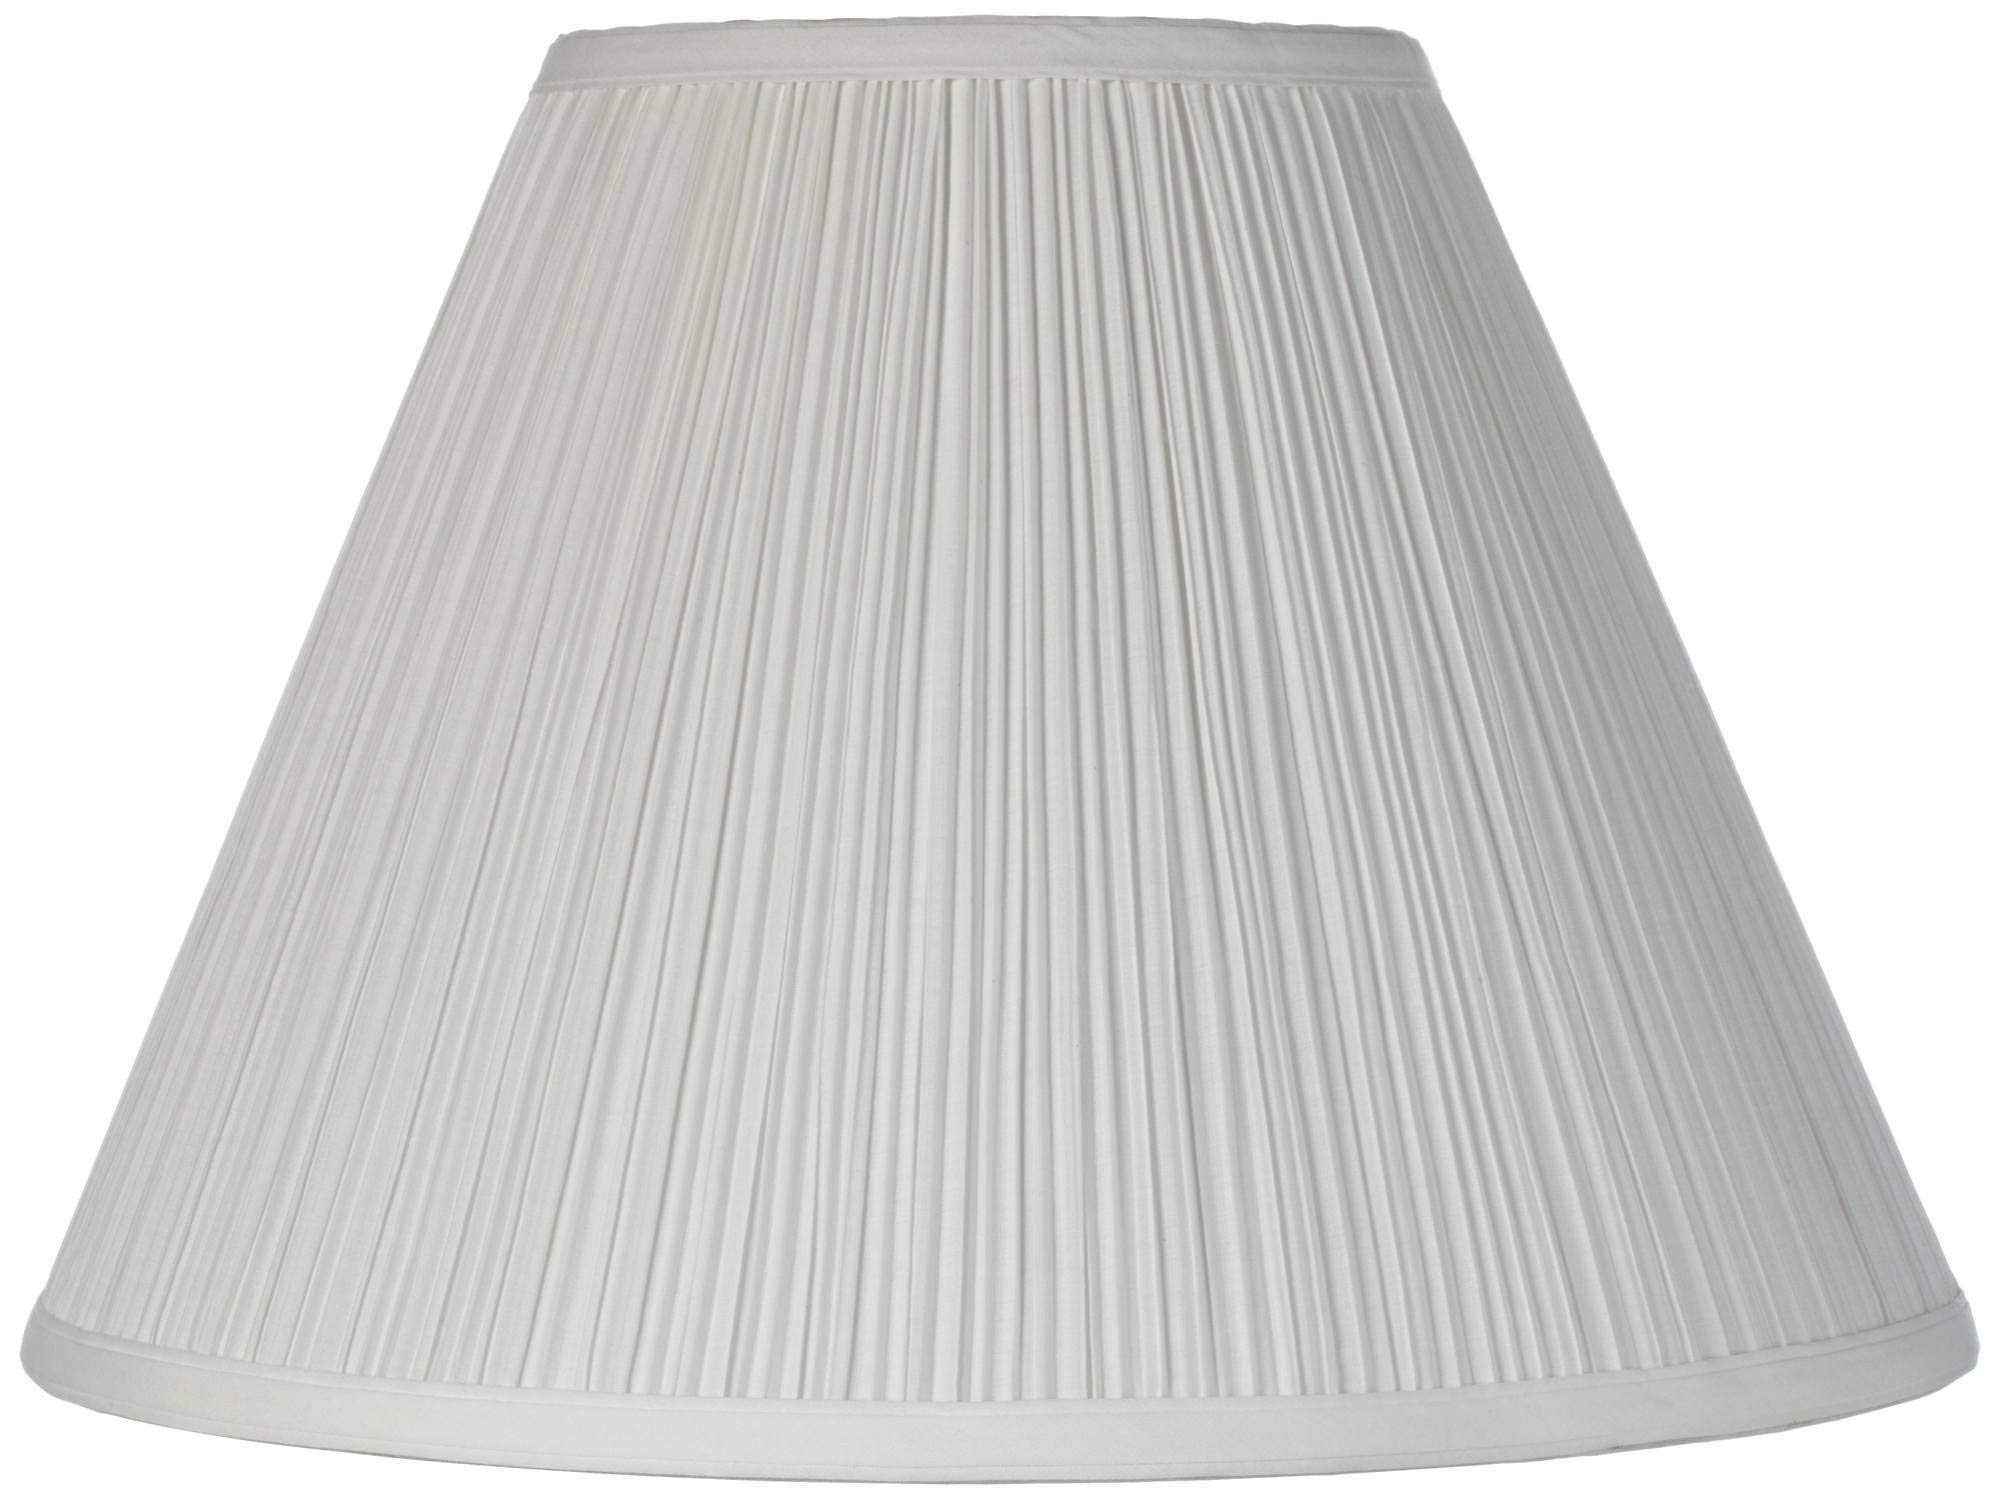 Brentwood Antique White Lamp Shade 6.5x15x11 (Spider)